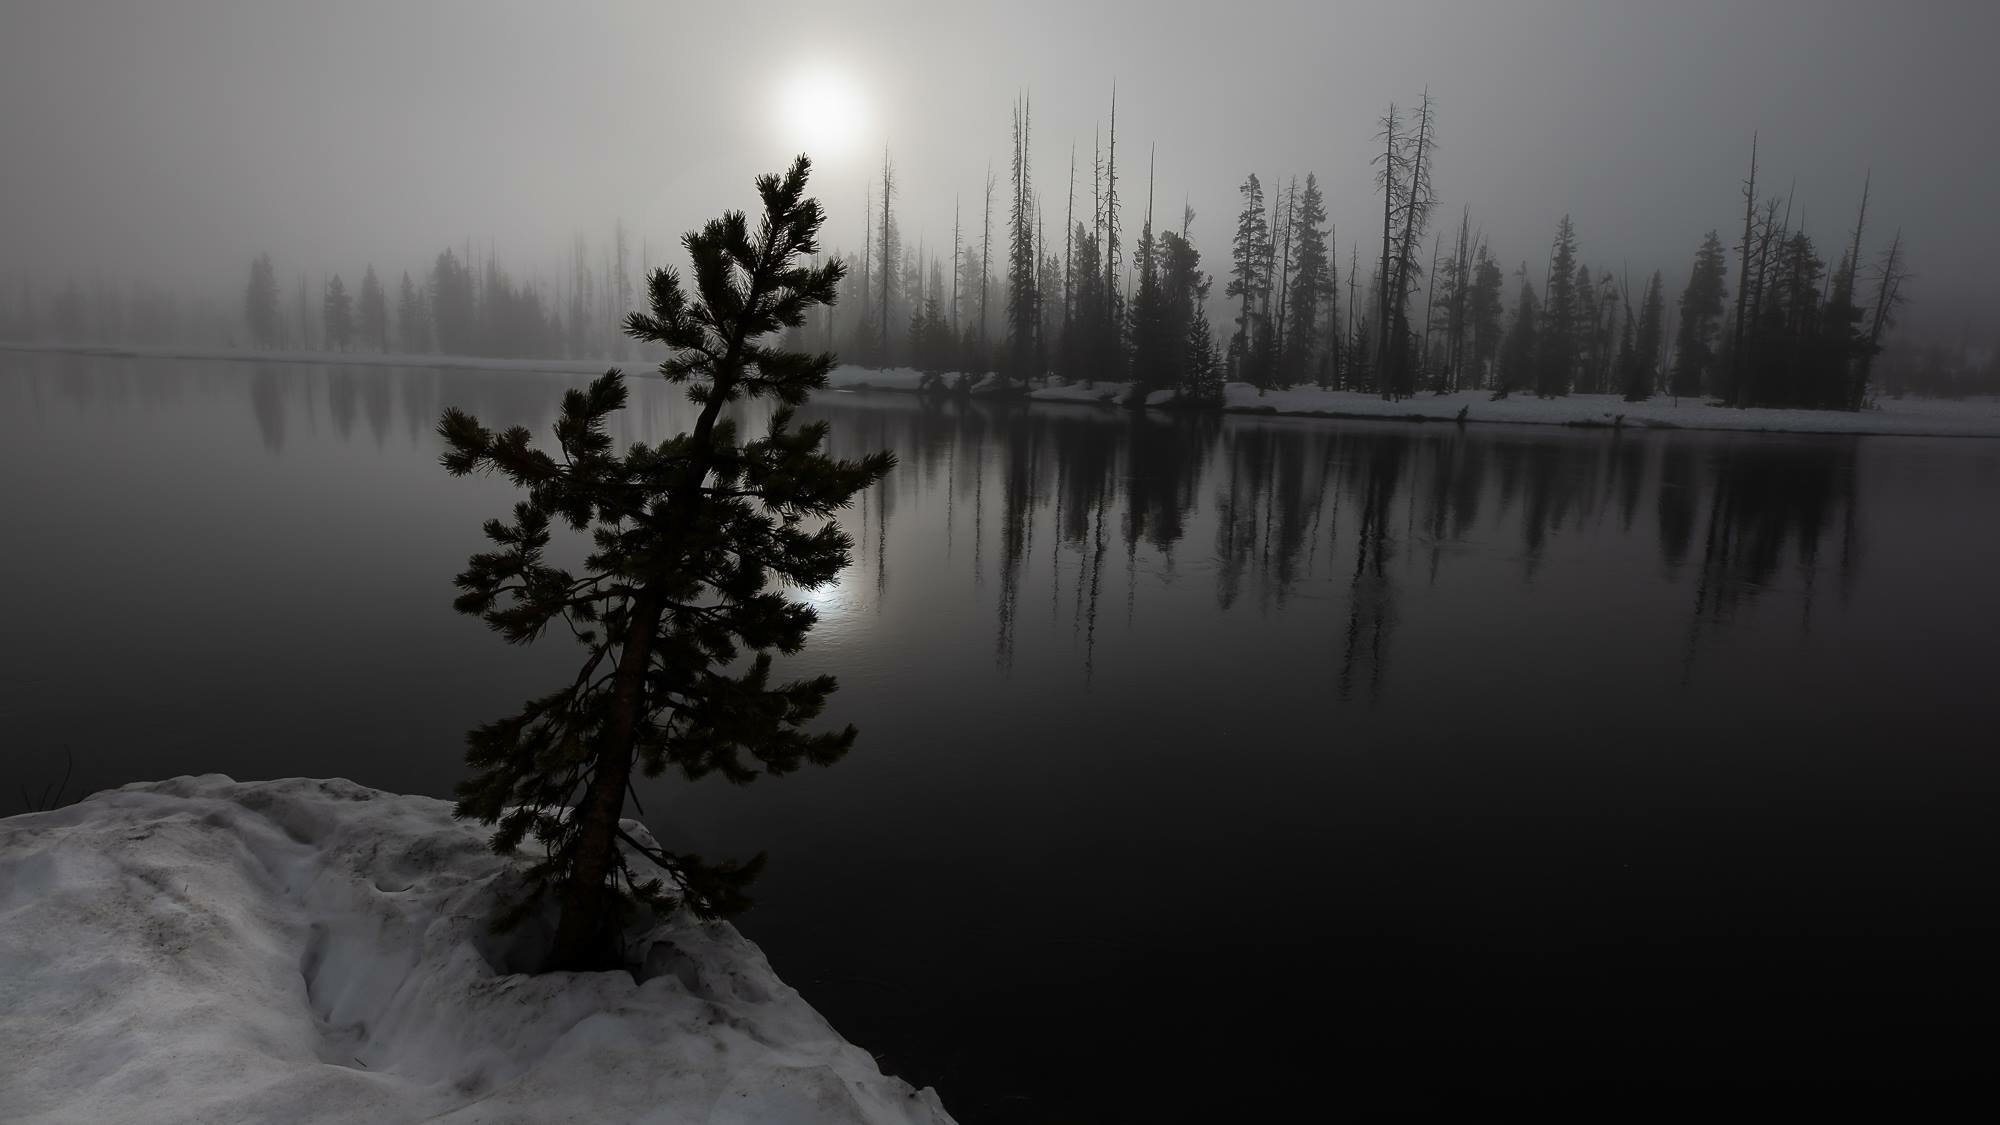 The fog made for a great moody shot. It was hard not to stop and take photos.